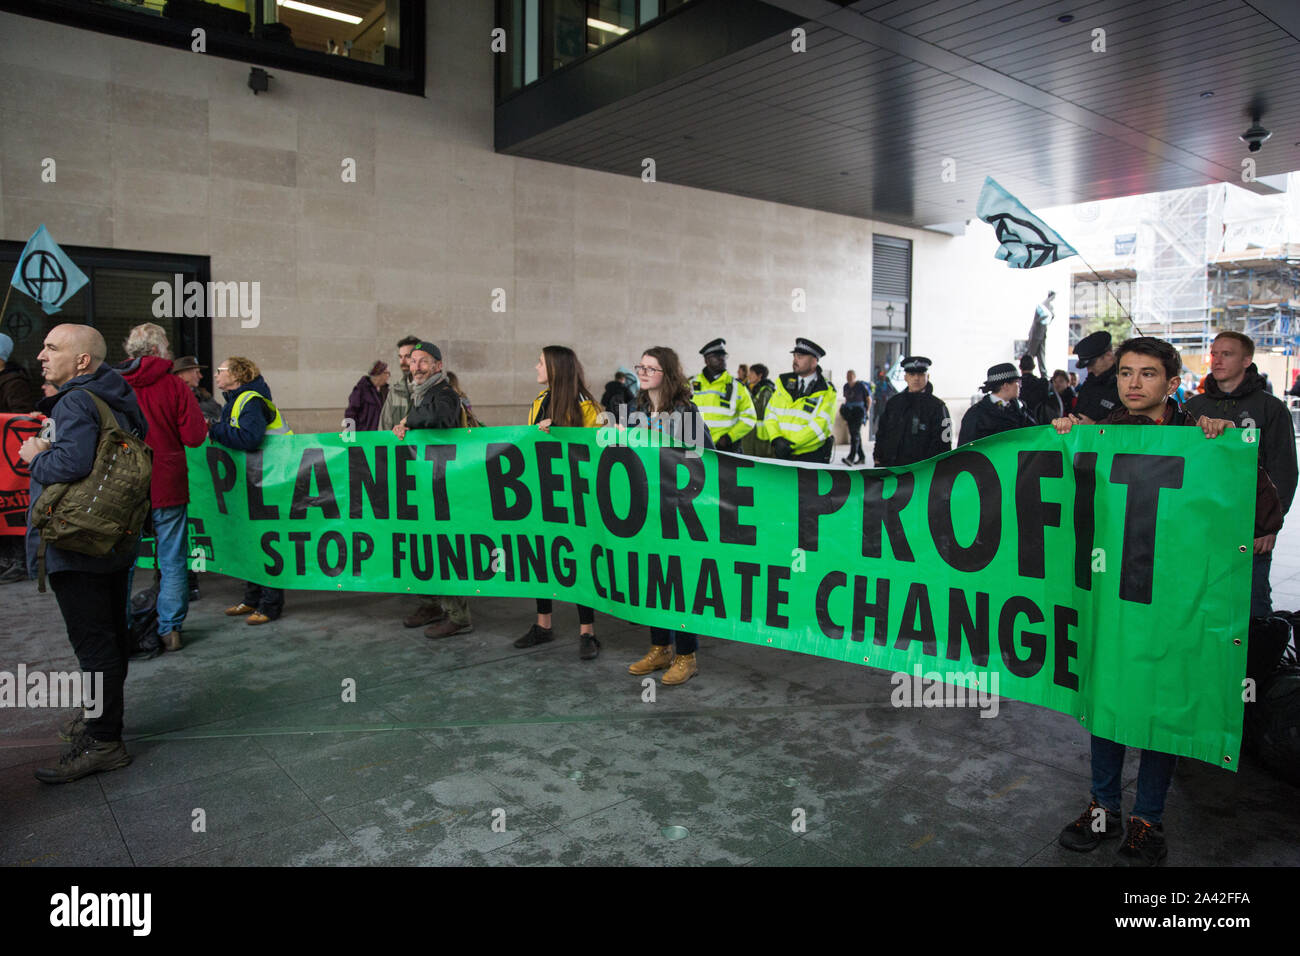 London, UK. 11 October, 2019. Climate activists from Extinction Rebellion protest outside the BBC's New Broadcasting House on the fifth day of International Rebellion protests. They were demanding that the broadcaster 'tell the truth' regarding the climate emergency. Credit: Mark Kerrison/Alamy Live News Stock Photo